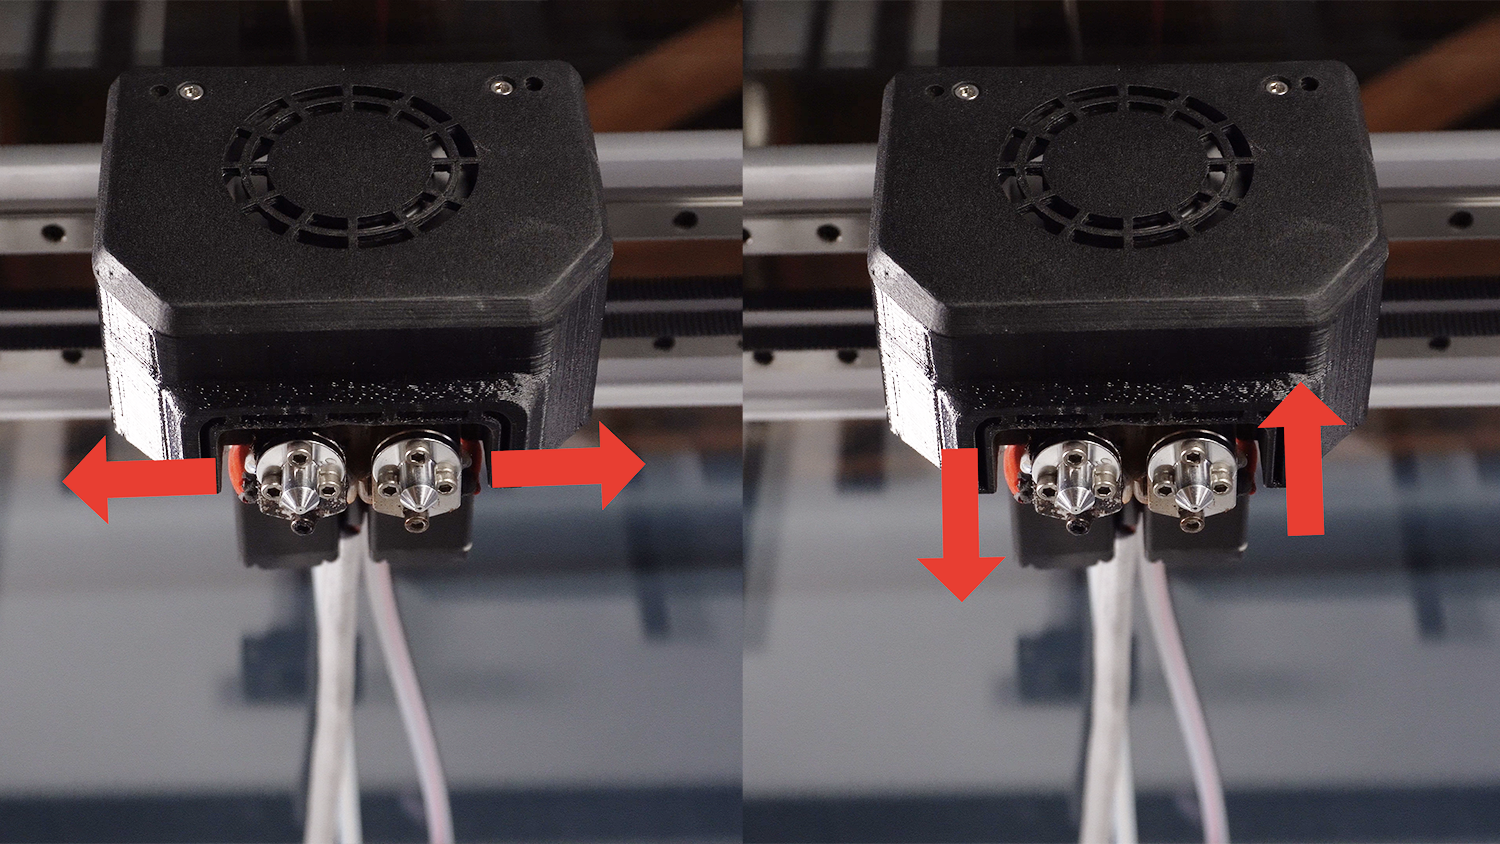 The nozzle offset (or the distance in the X and Y relative to each other) needs to be calibrated in order to achieve good quality dual prints.